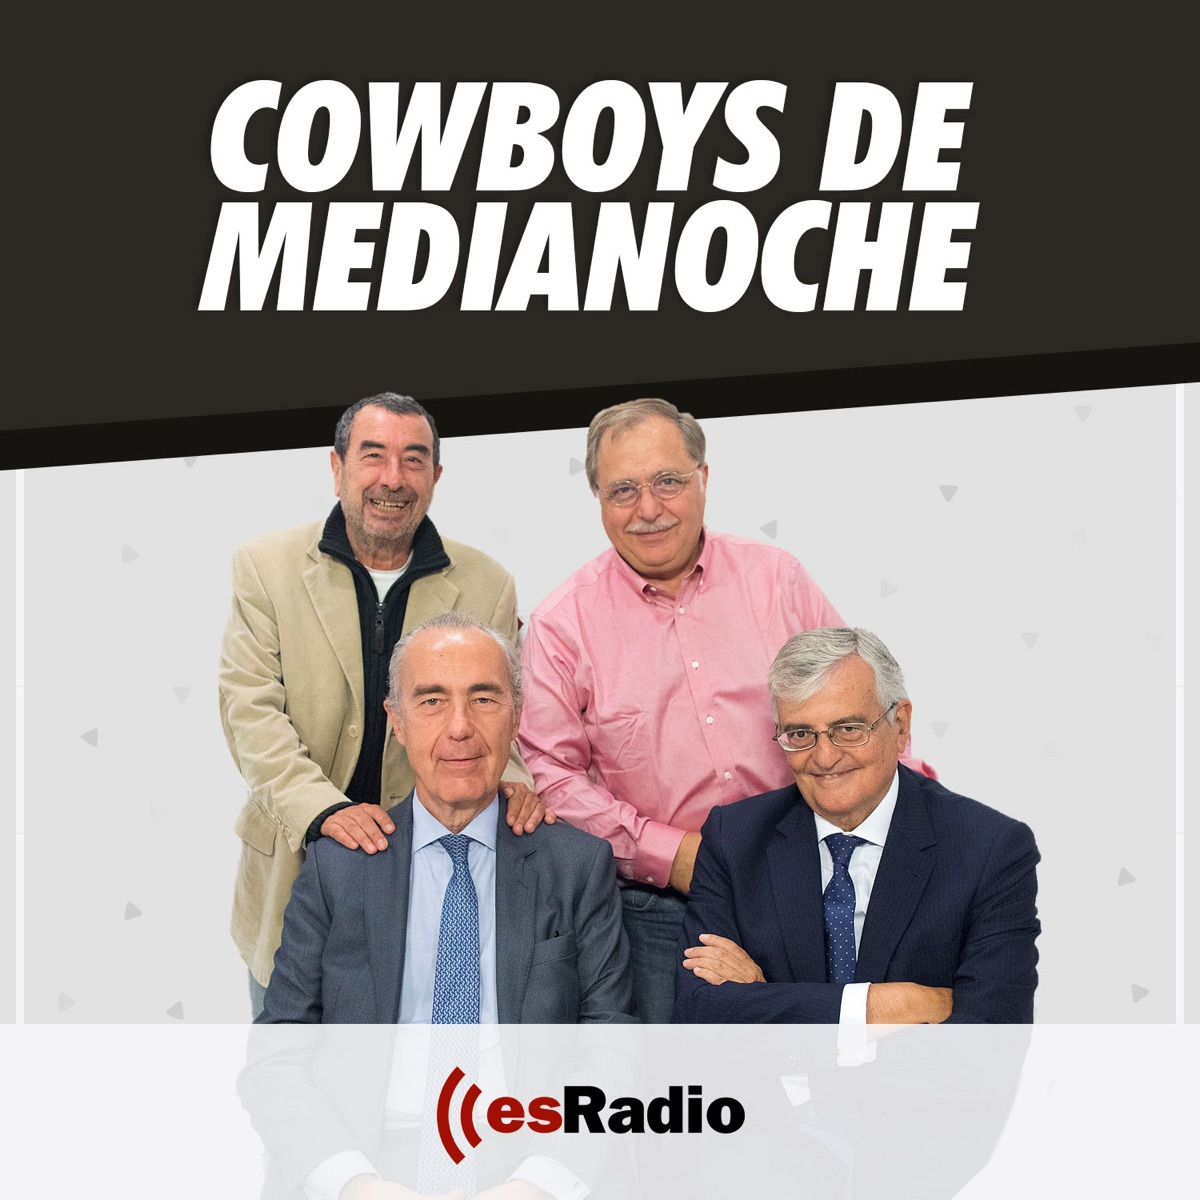 Cowboys de Medianoche: 'Cowboys de Medianoche'